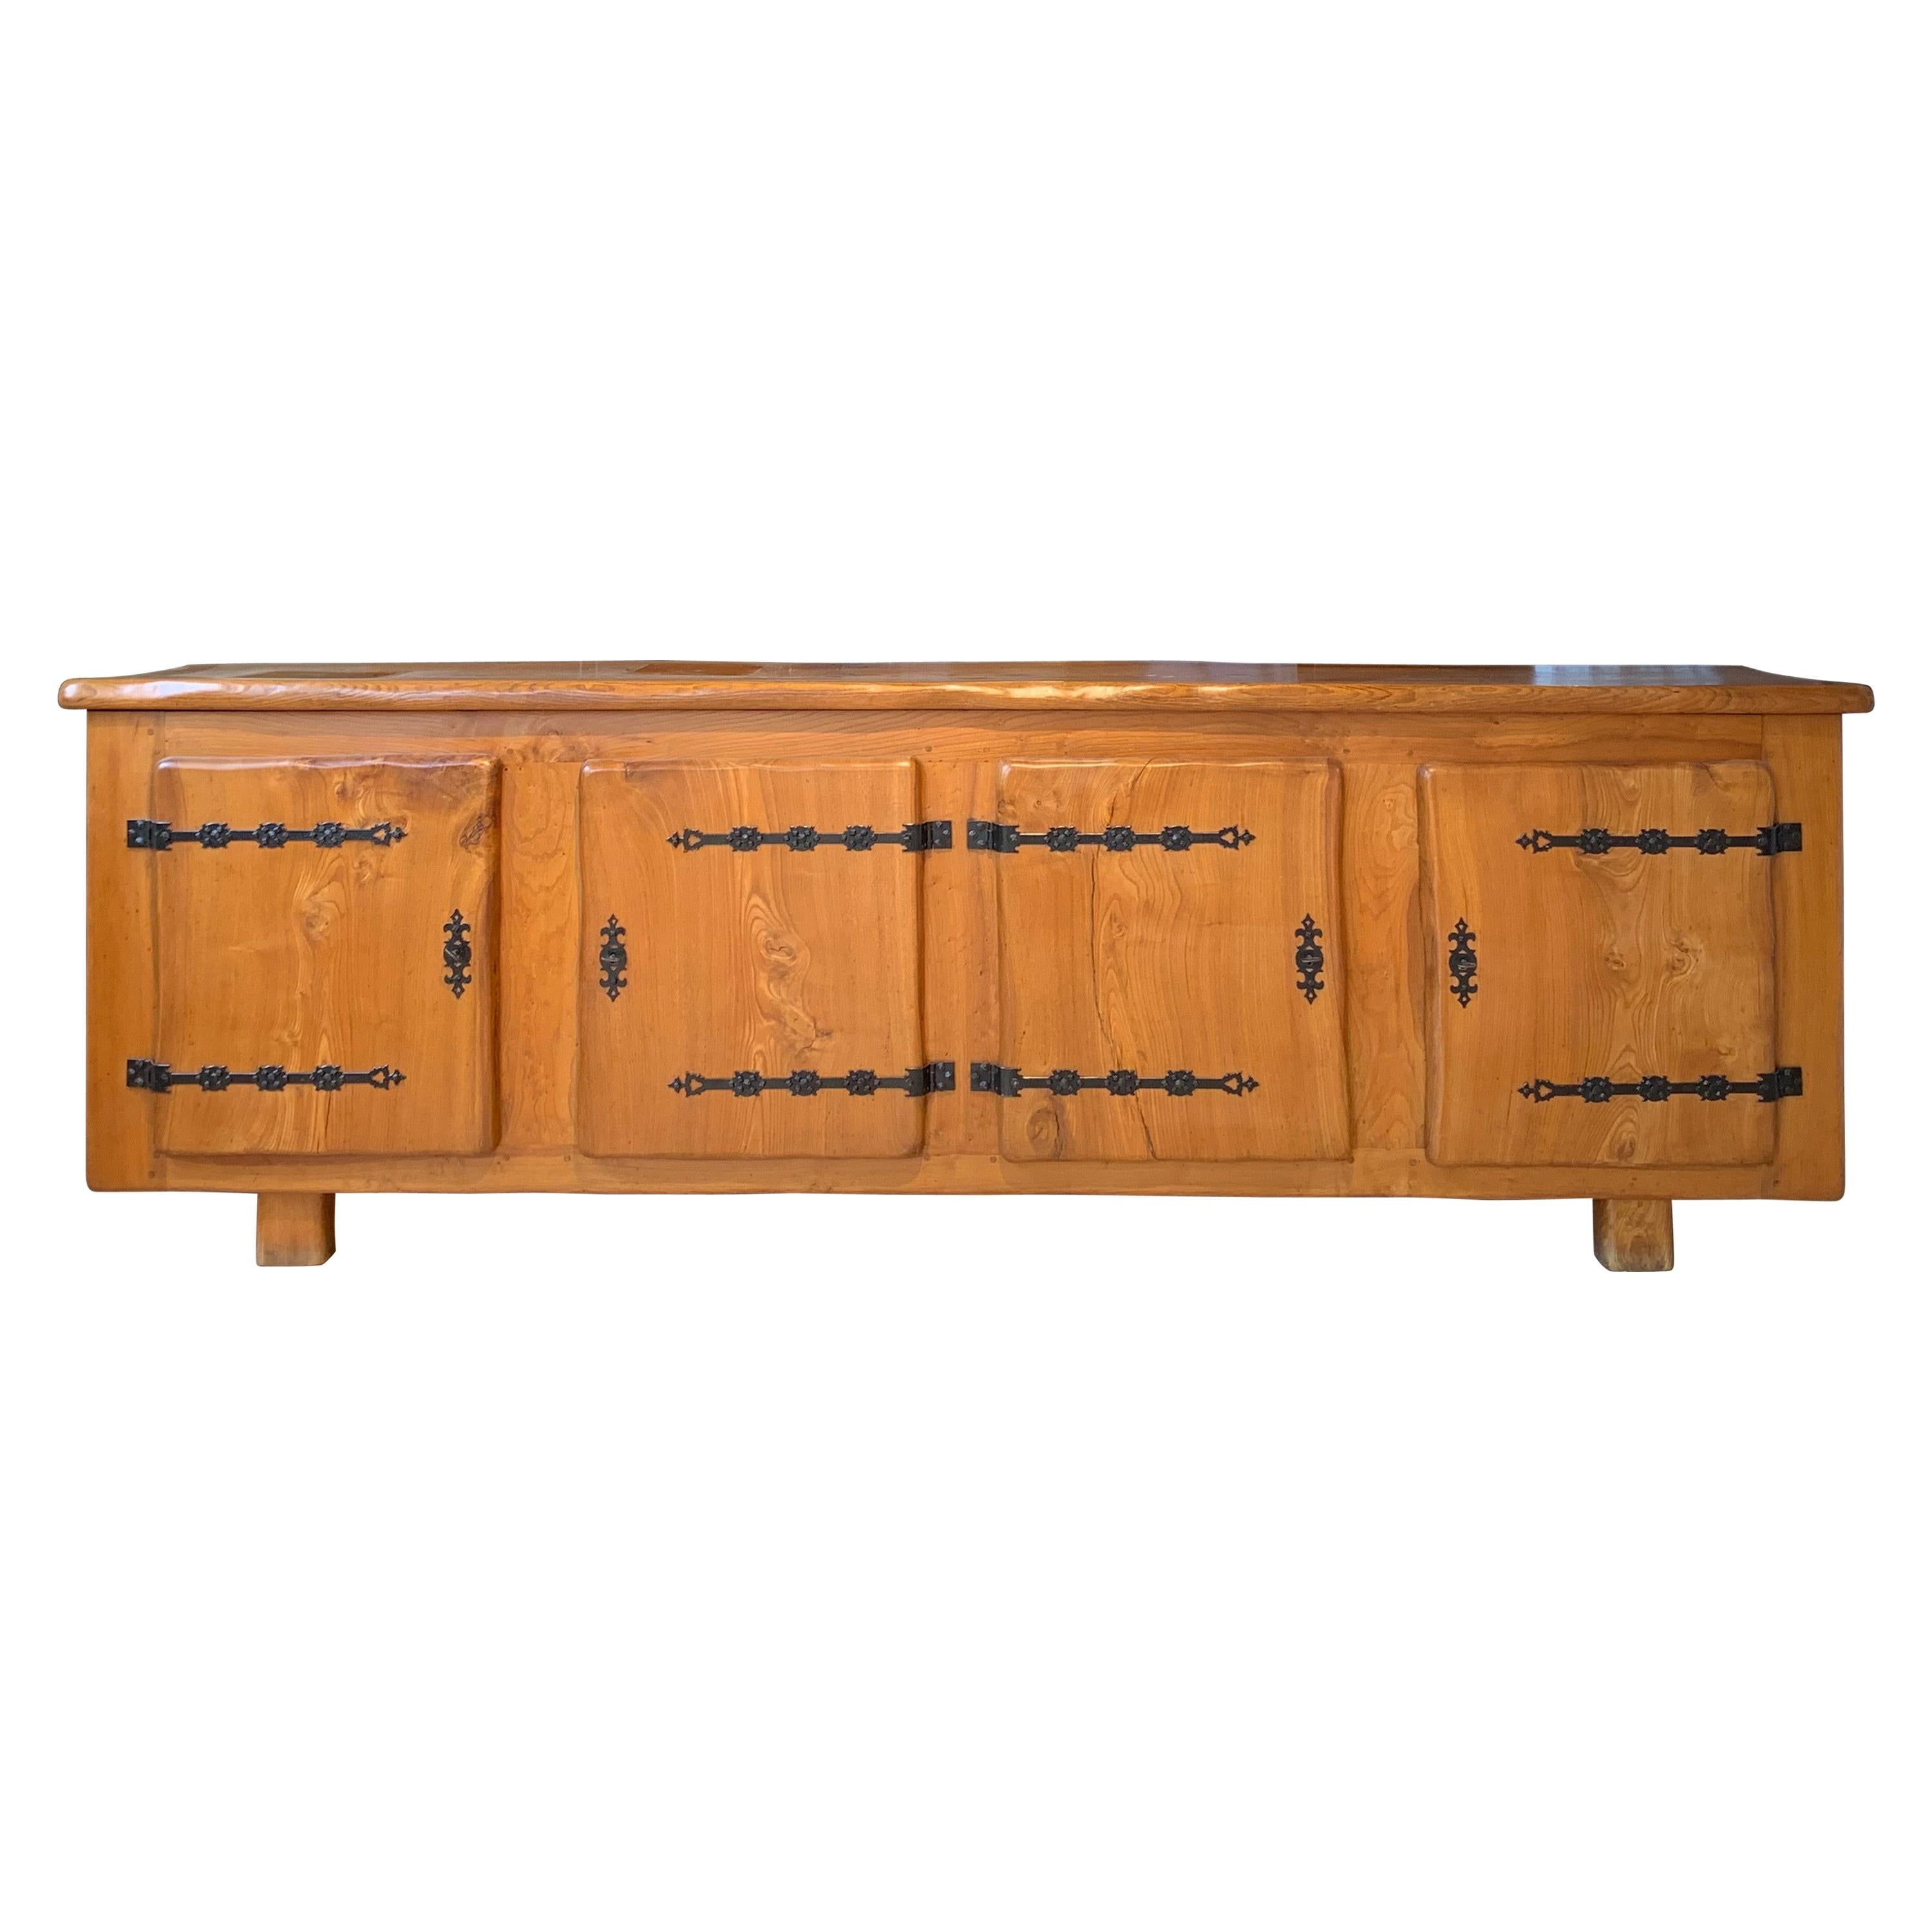 Sideboard by Charles Flandre, circa 1950, France